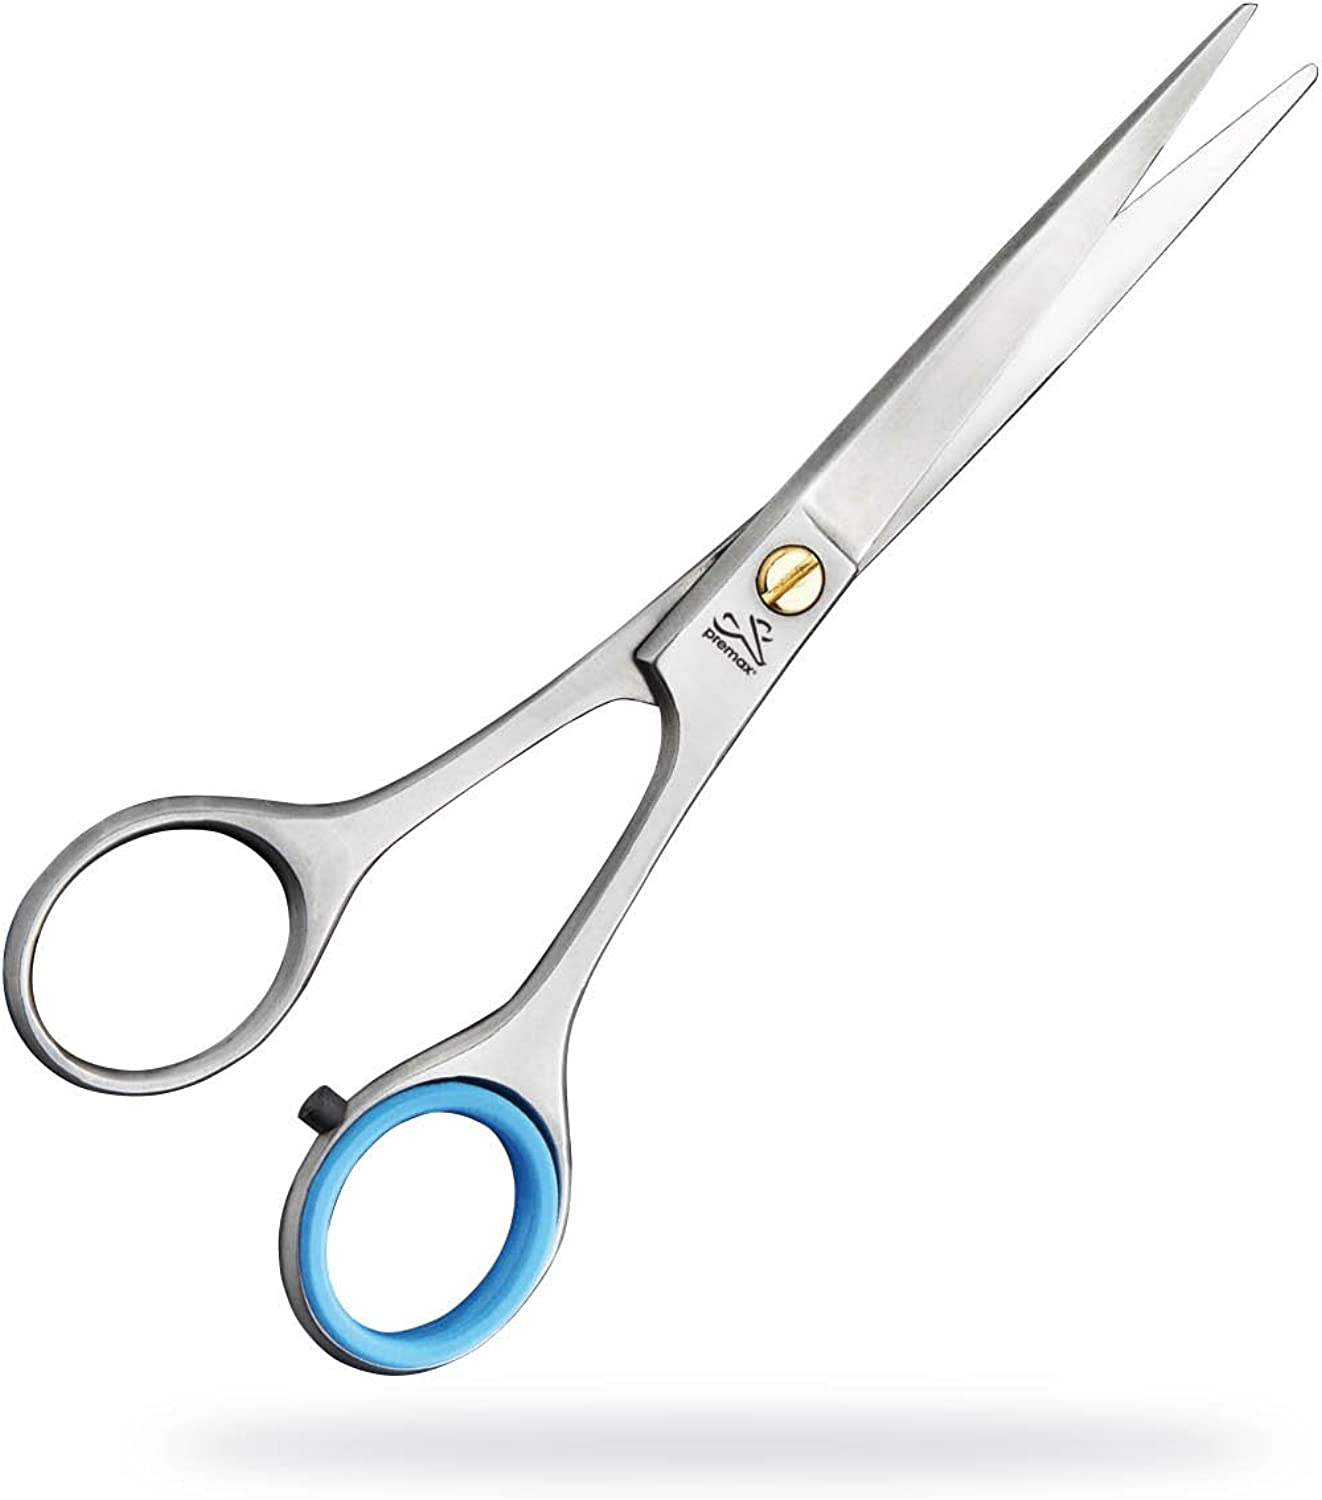 Premax F82210612KS 6.5 inch 1 Serrated Edge Stainless Steel Professional Hair Styling Scissors Suitable for Dog Grooming